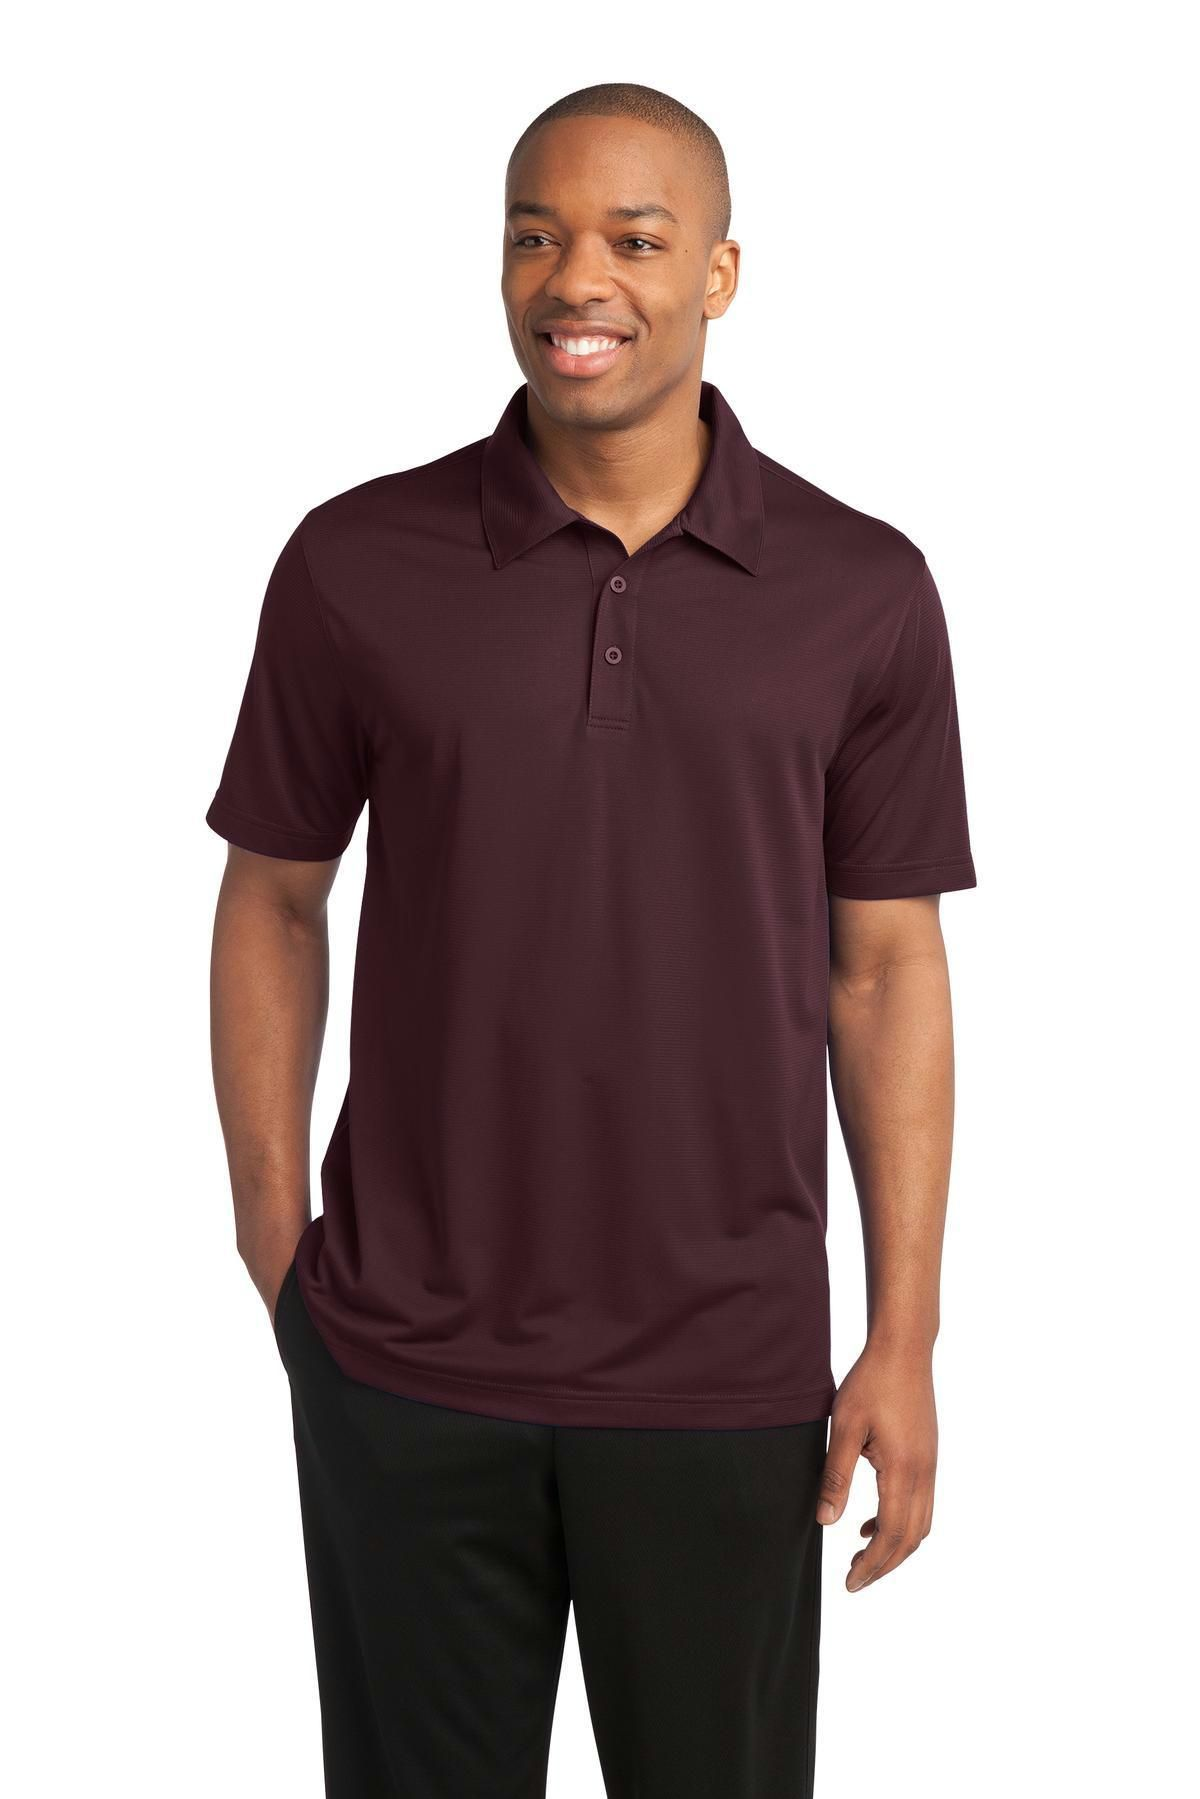 SportTek PosiCharge Active Textured Polo. ST690 Sports